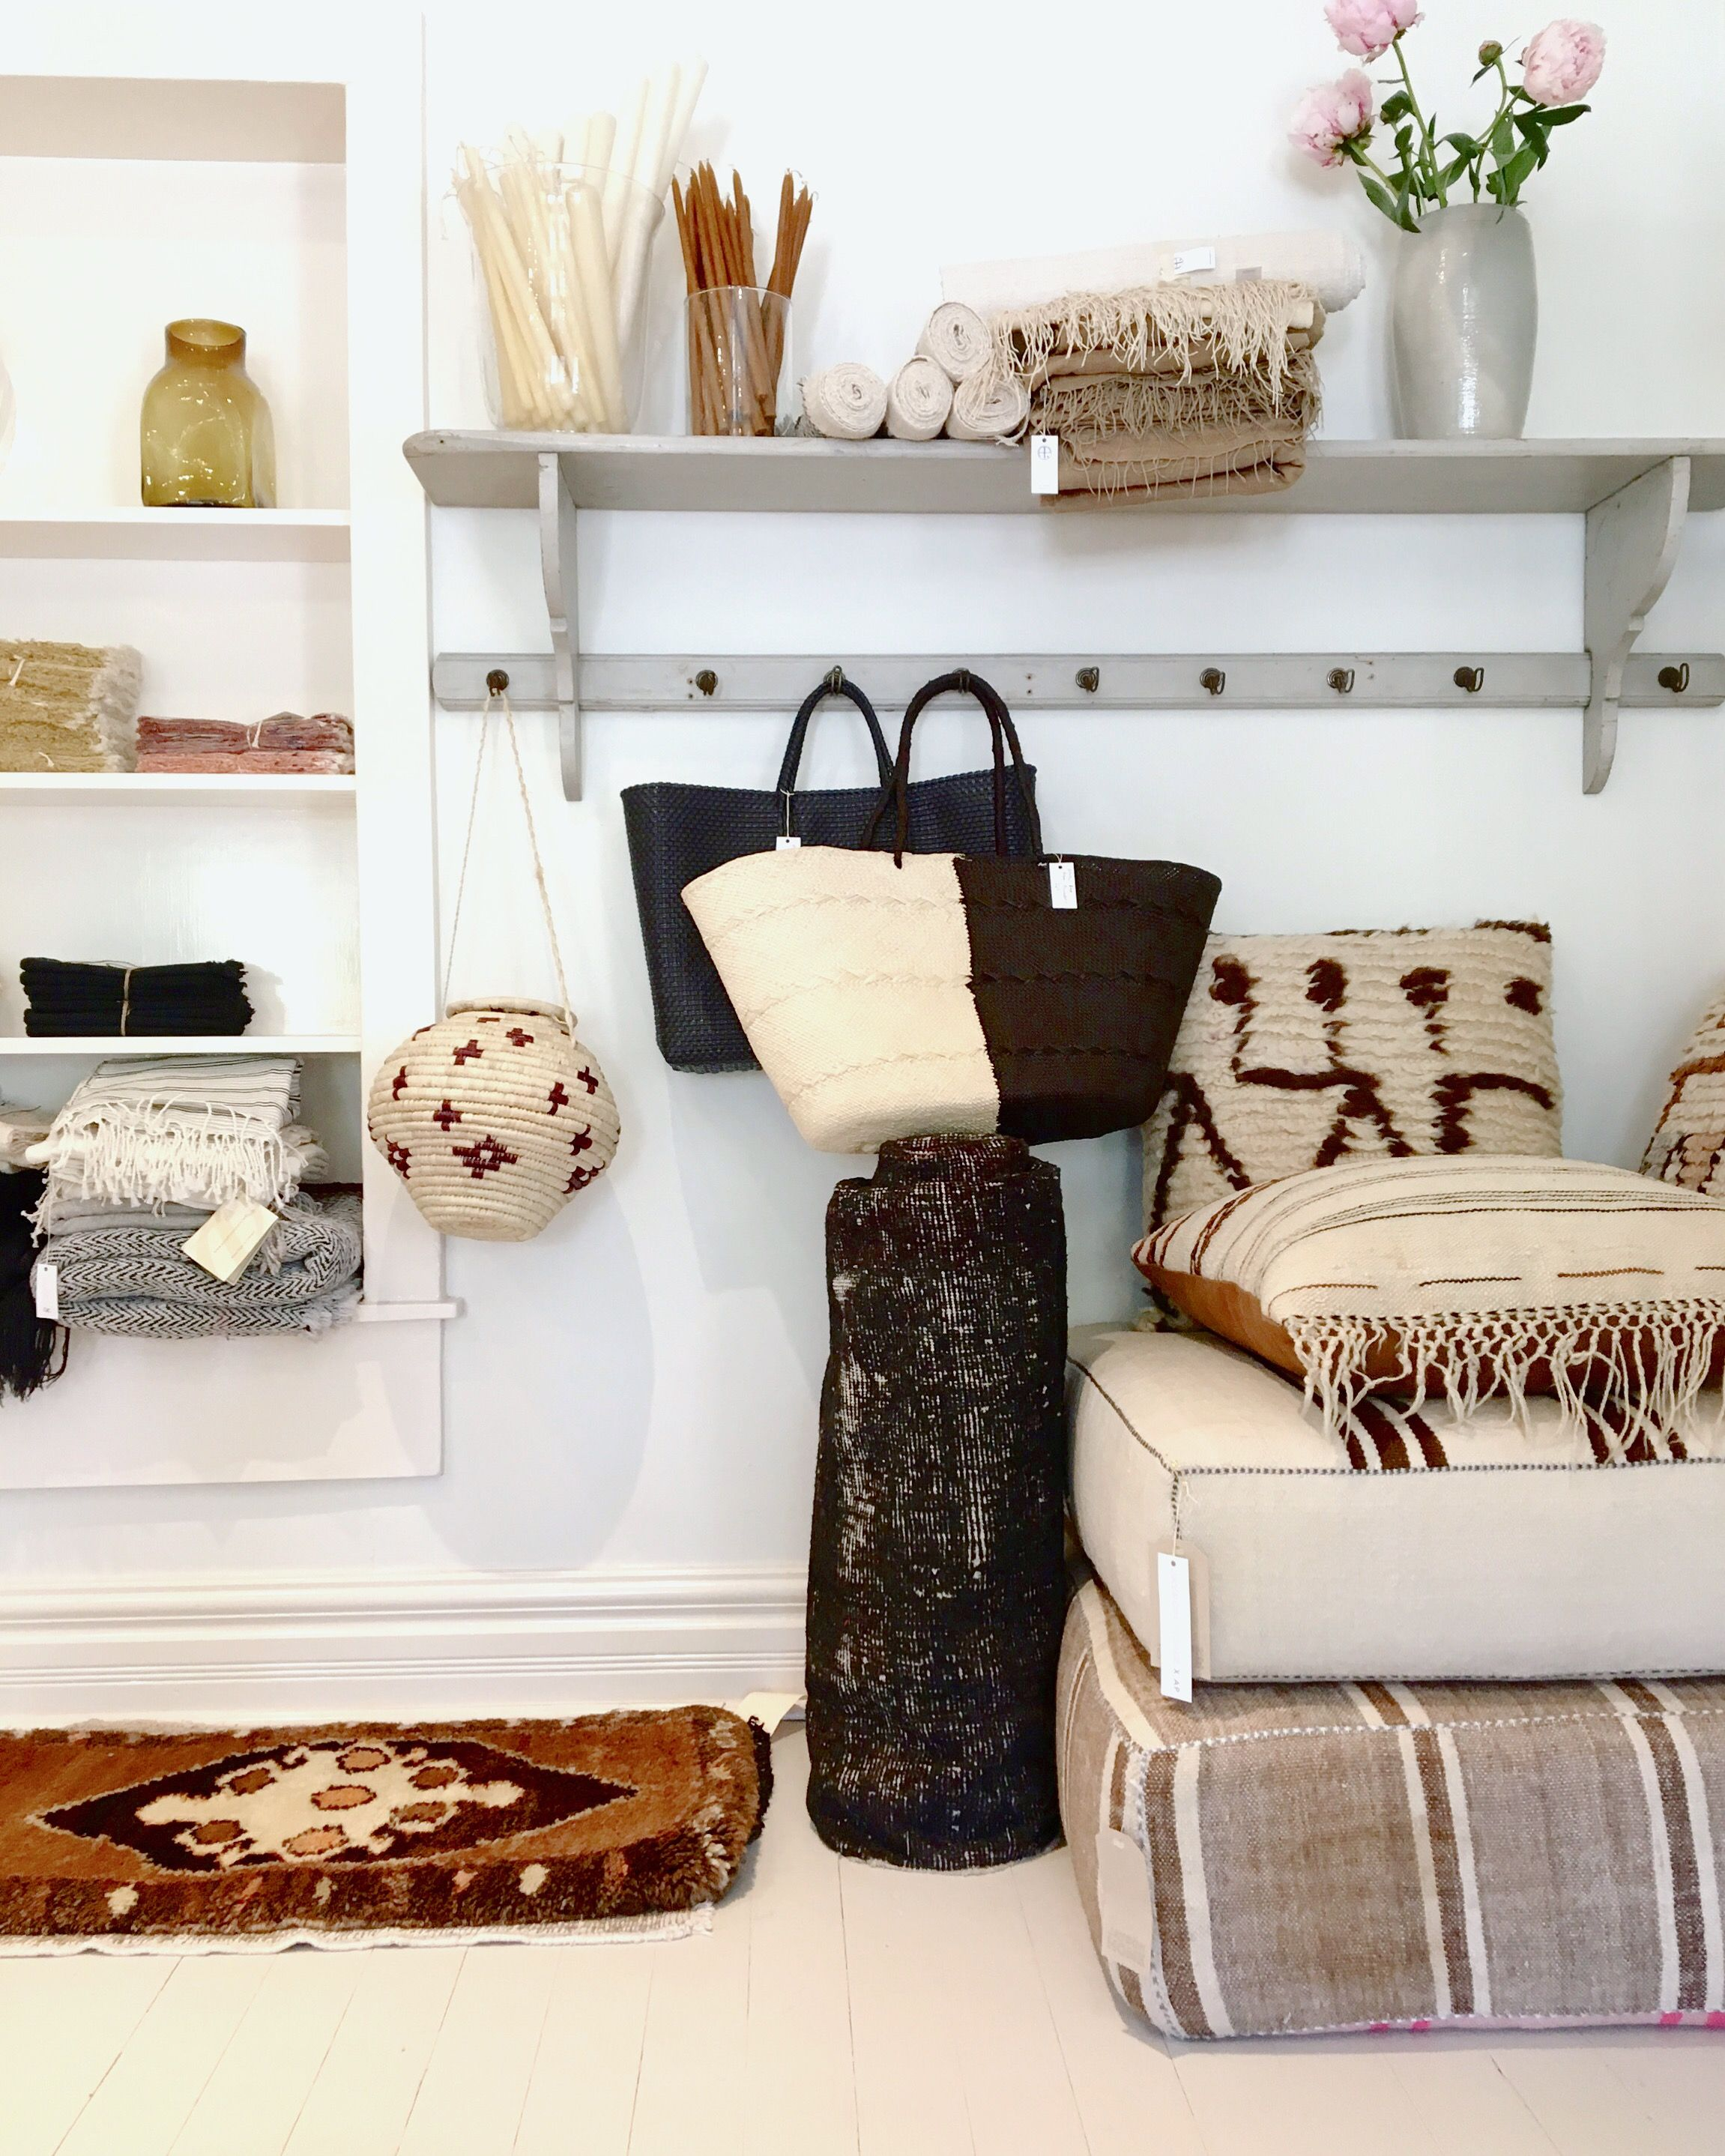 The Jayson Home Seasonal Collab At AP Shop Lakeside In Lakeside MI. Chicago  Store,